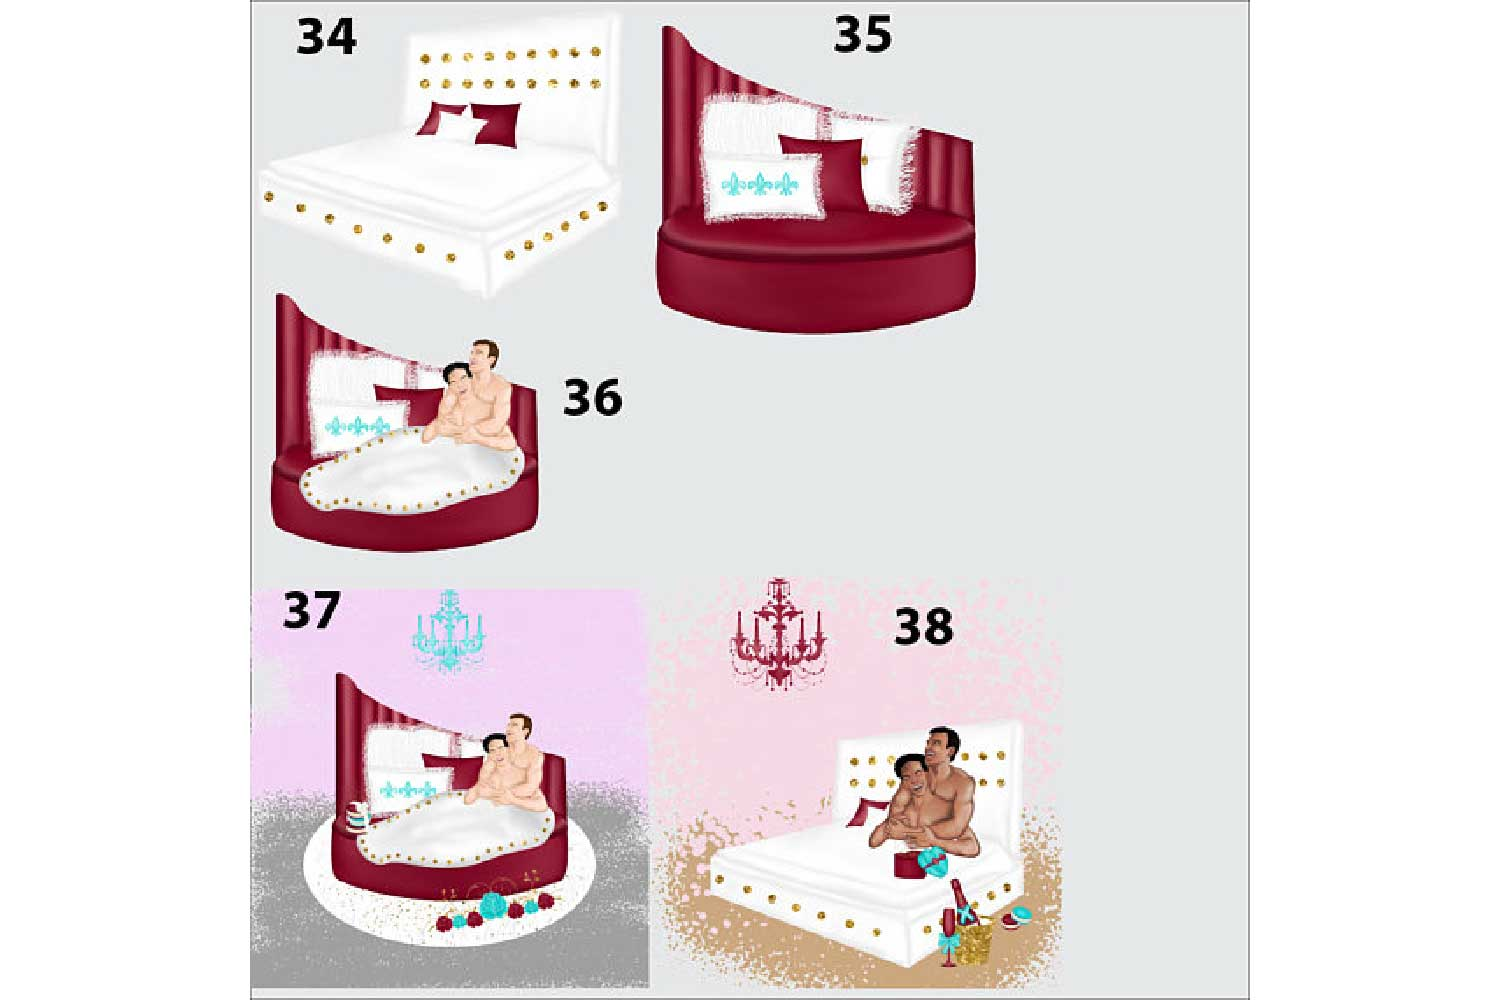 Gay Valentines Day clipart example image 6